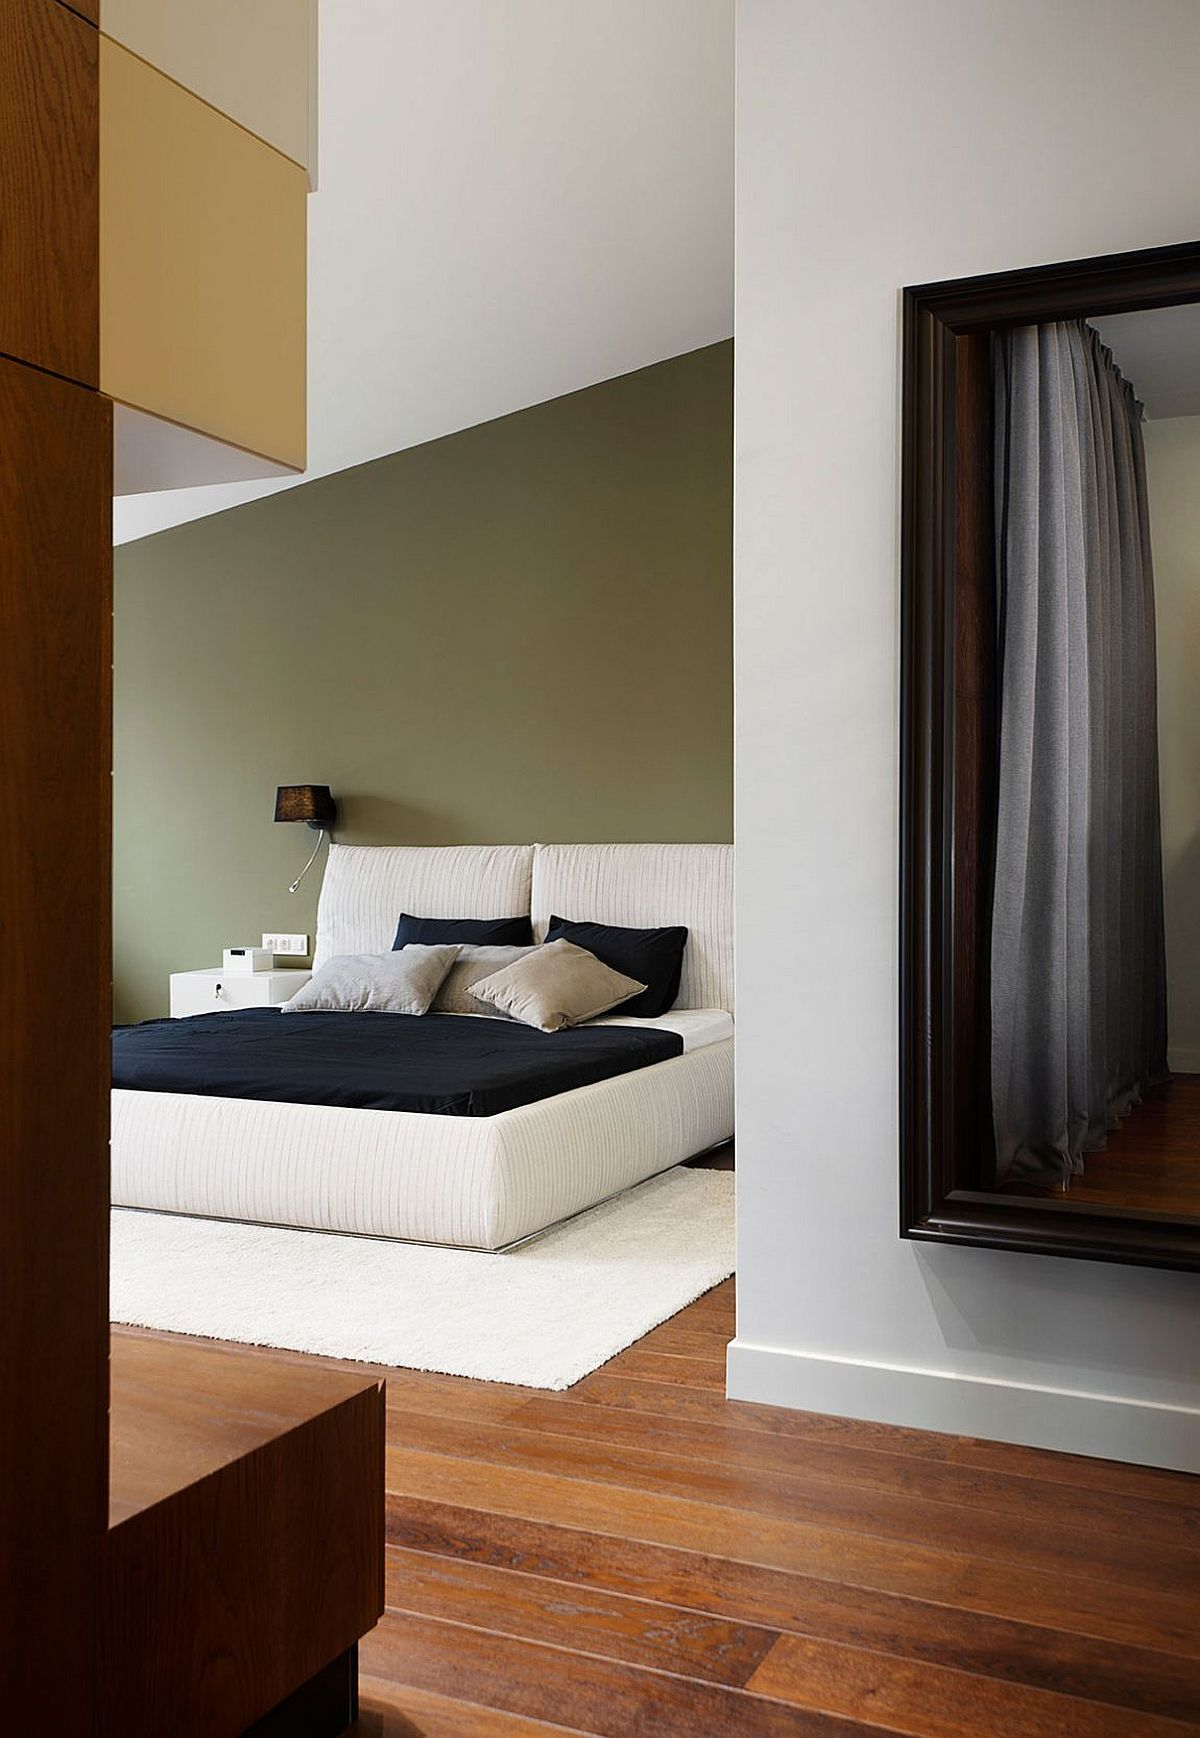 Modern bedroom in greenish-gray and white with minimal style